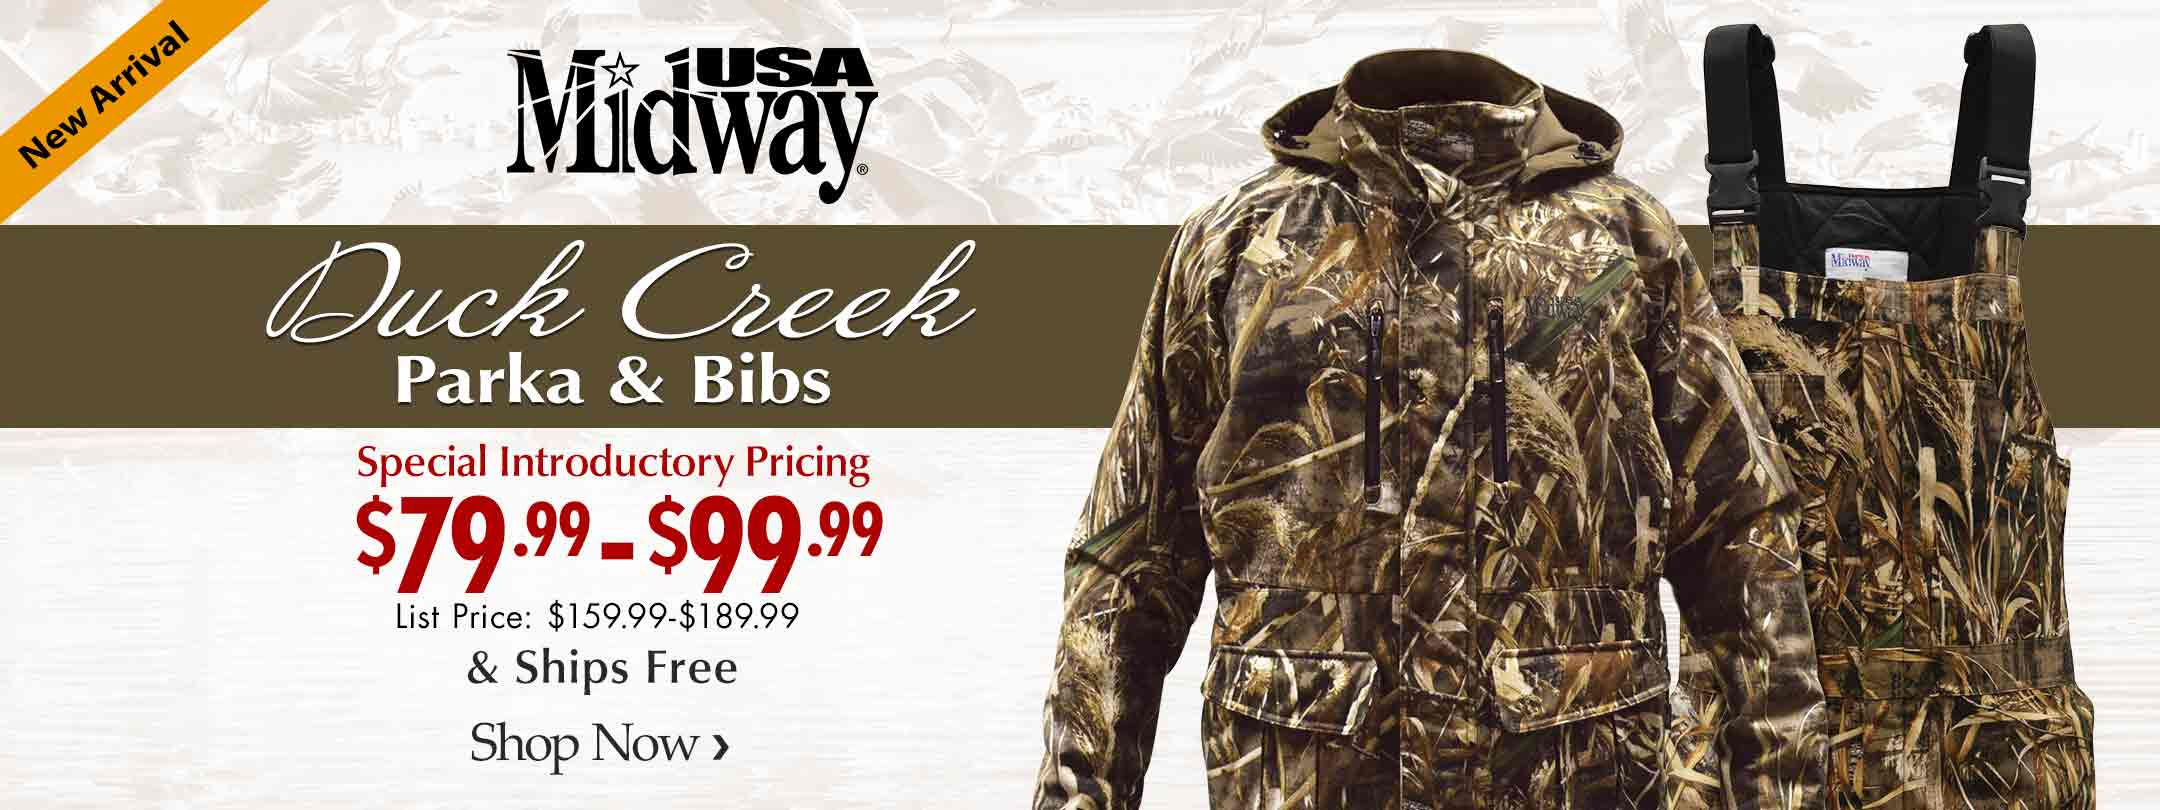 Introducing The MidwayUSA Duck Creek Line